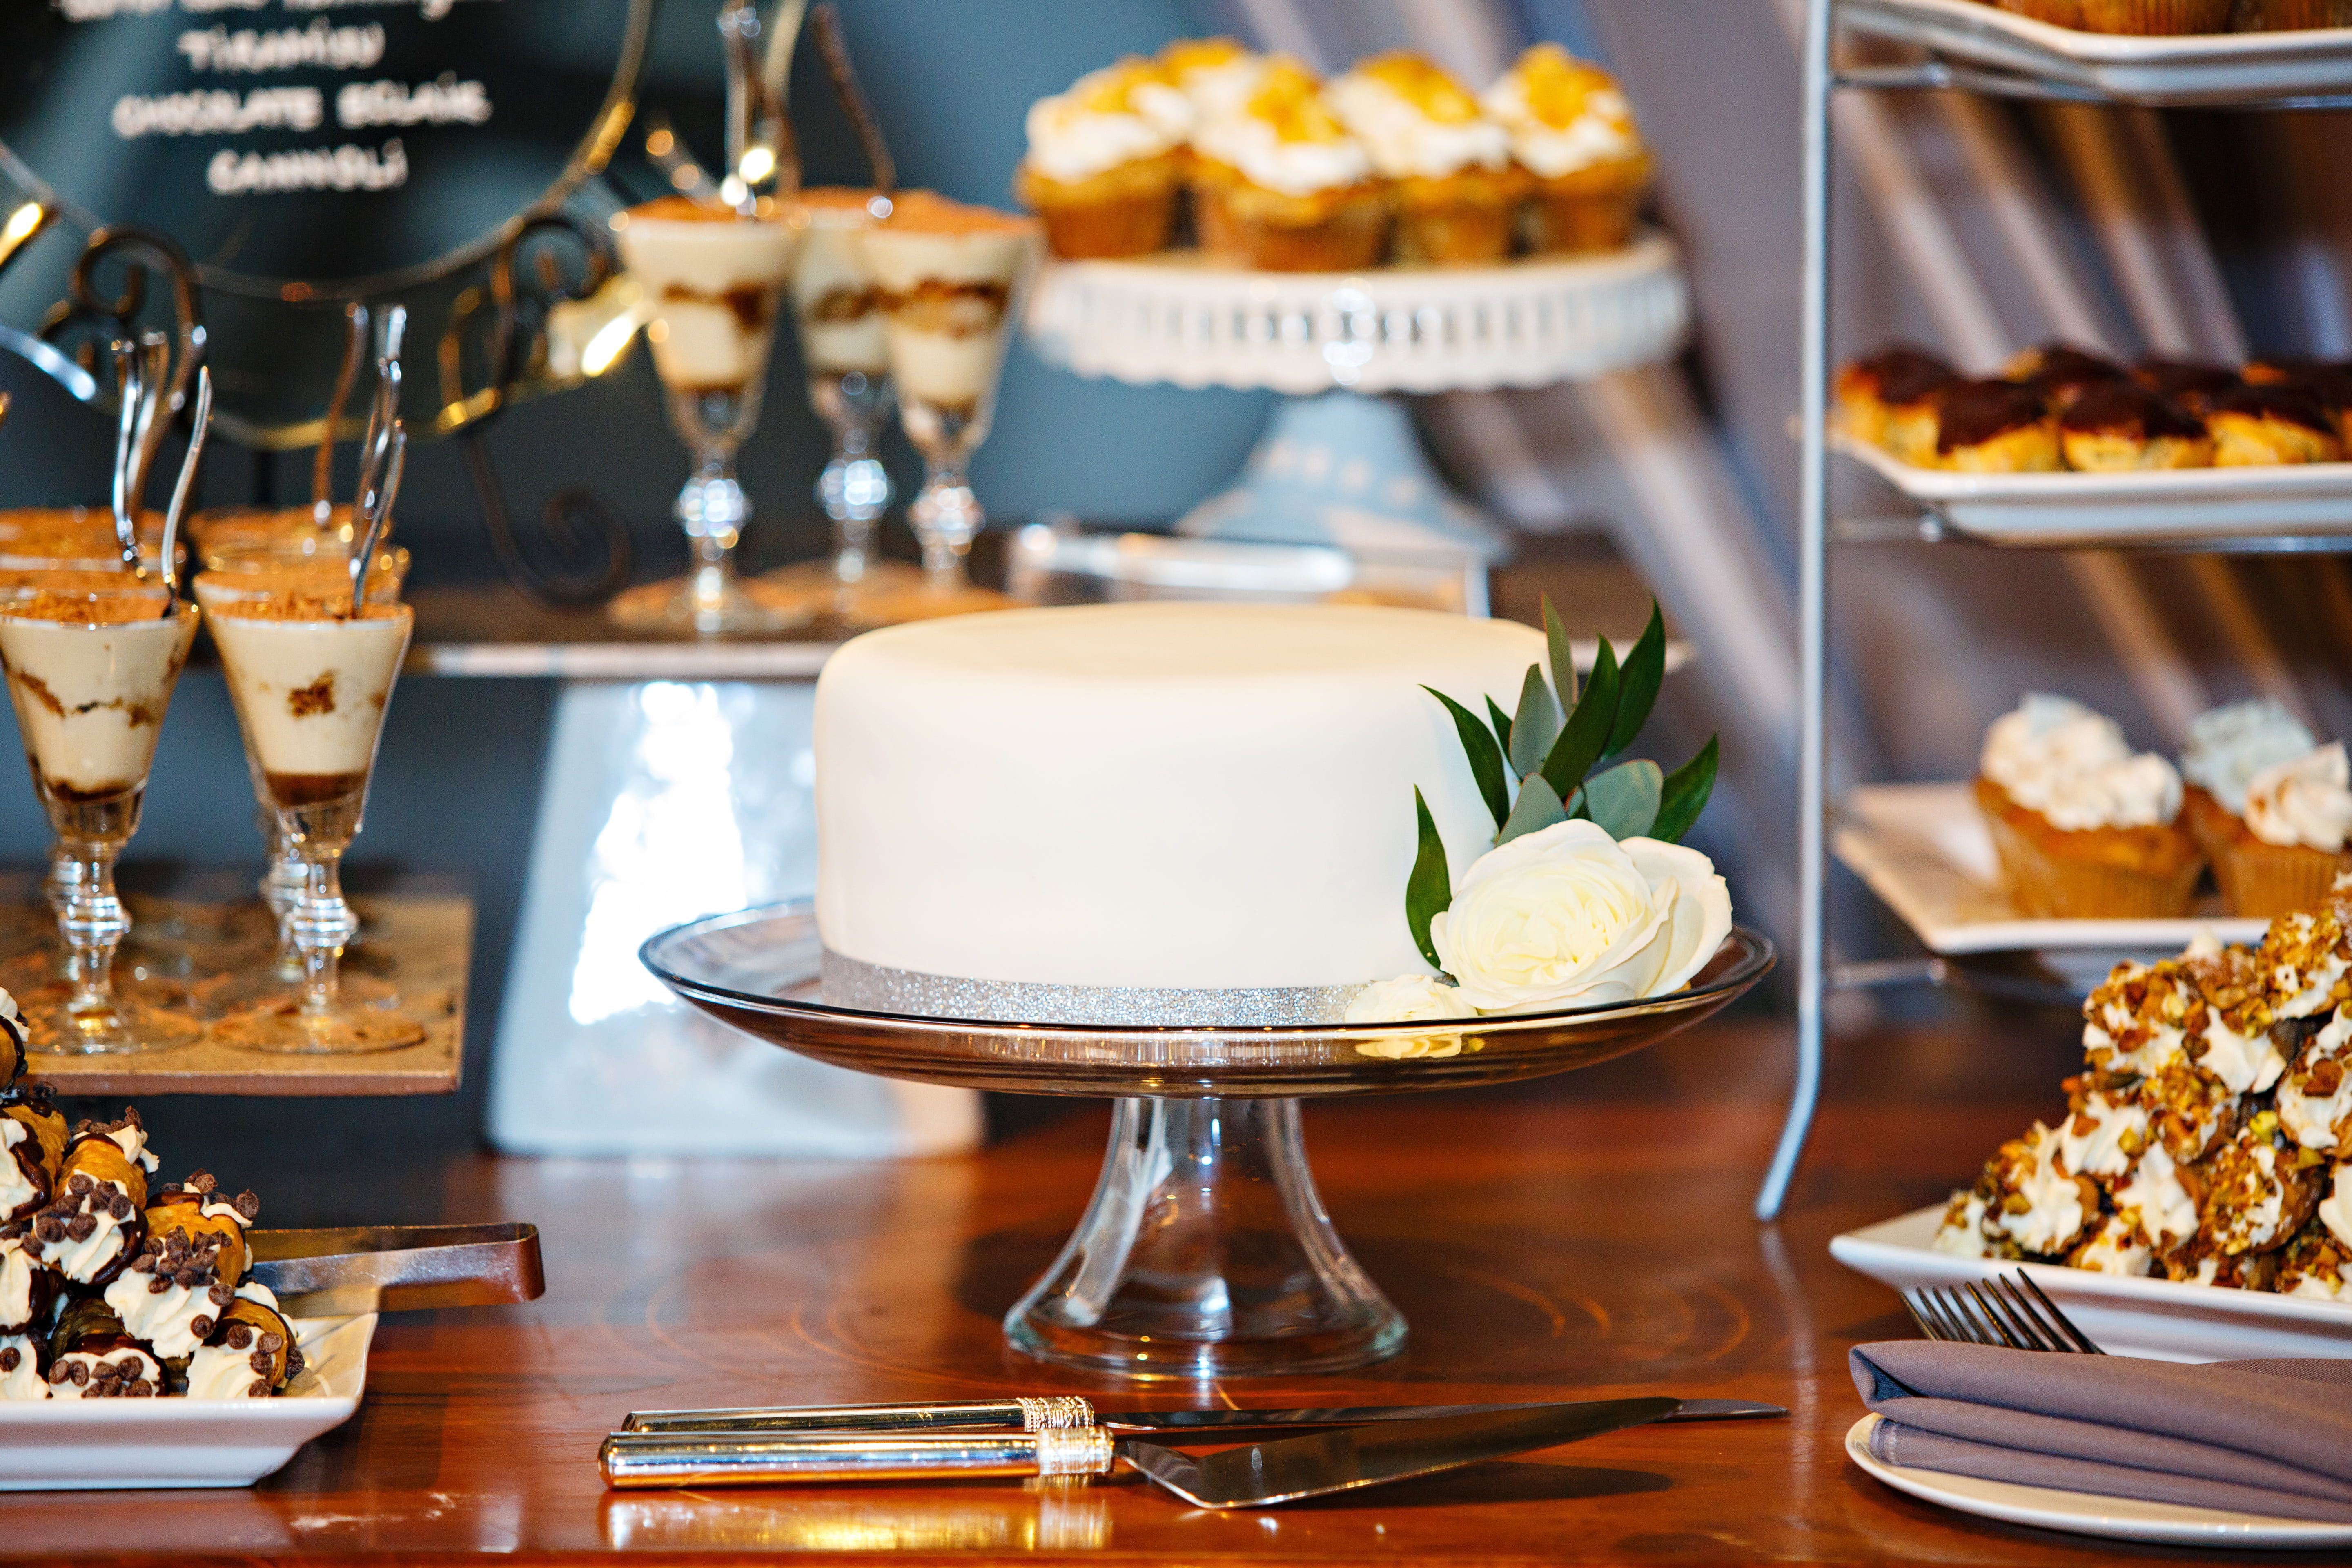 Simple Minimalist Wedding Cake For A Winter Wedding With A Dessert Table Photo Crystal Herry Photograp Dessert Table Beautiful Wedding Cakes Winter Wedding